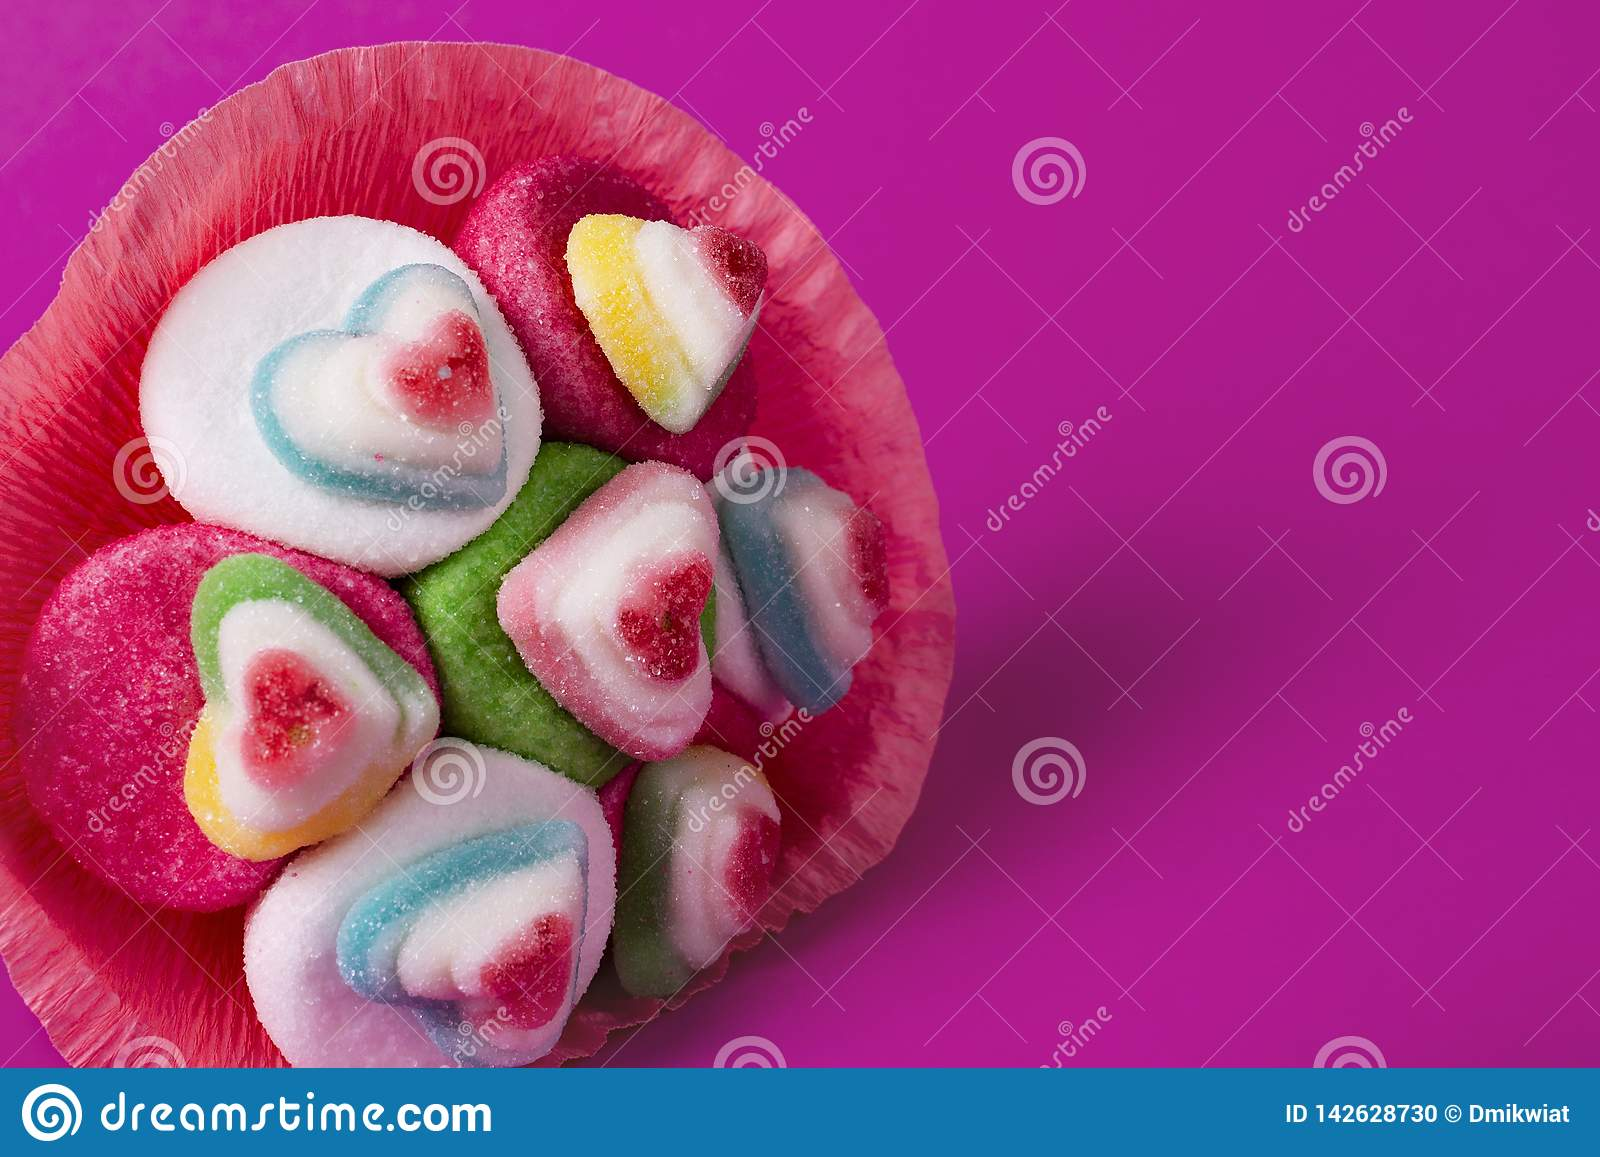 Bouquet of marmalade and sweets in pink packaging on a pink background